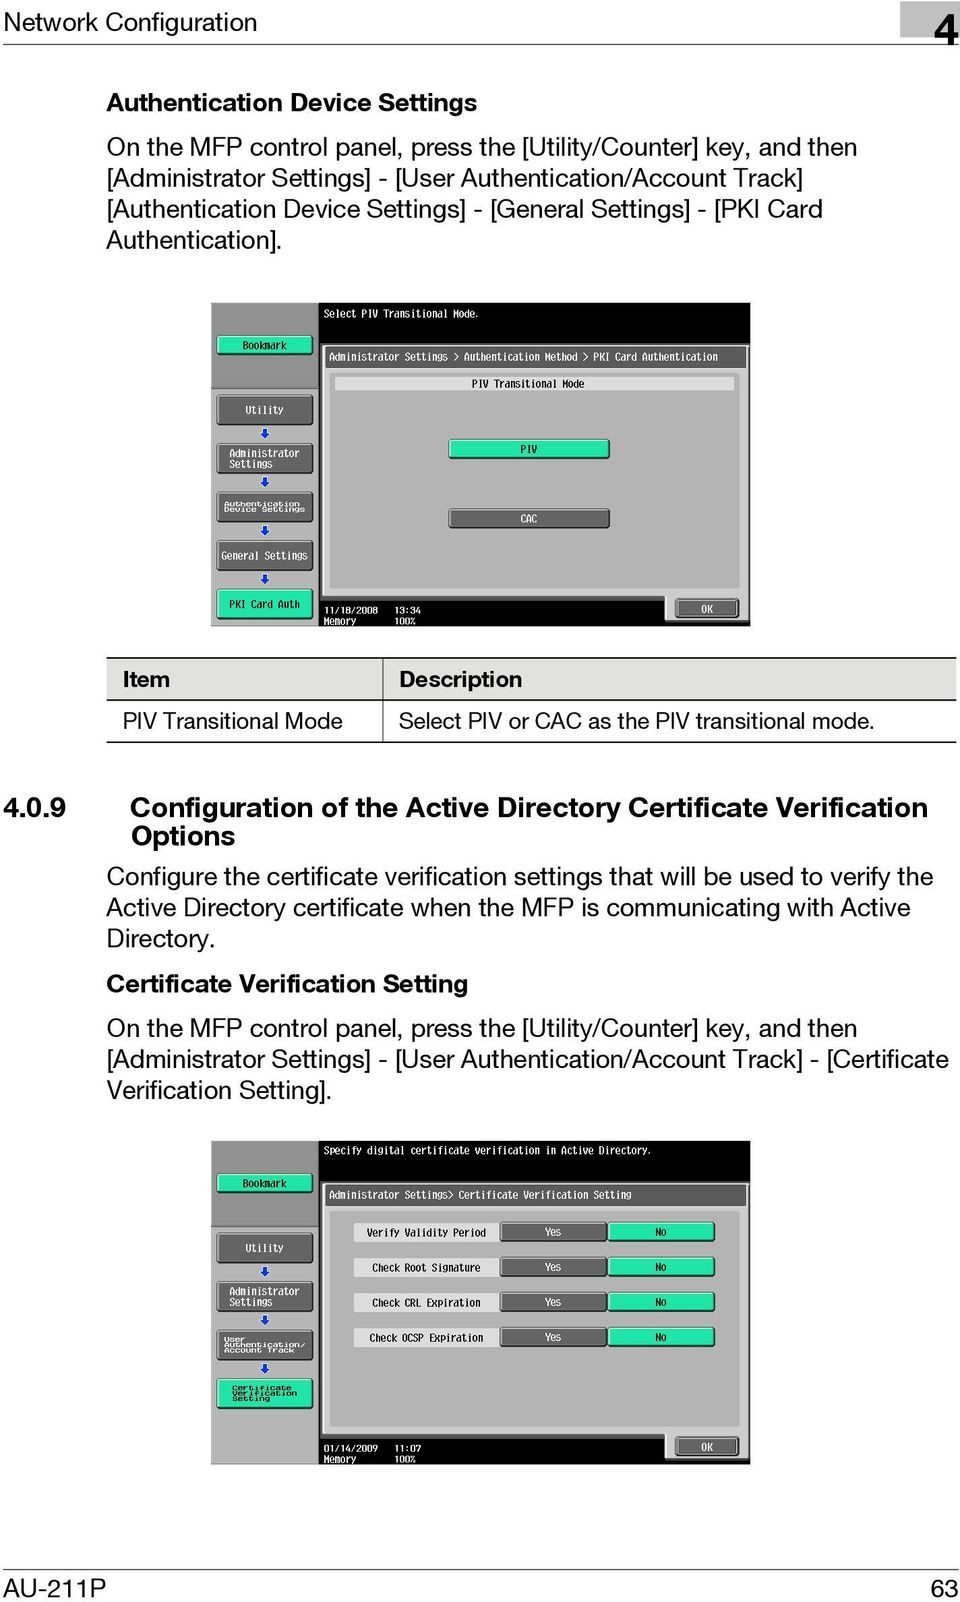 9 Configuration of the Active Directory Certificate Verification Options Configure the certificate verification settings that will be used to verify the Active Directory certificate when the